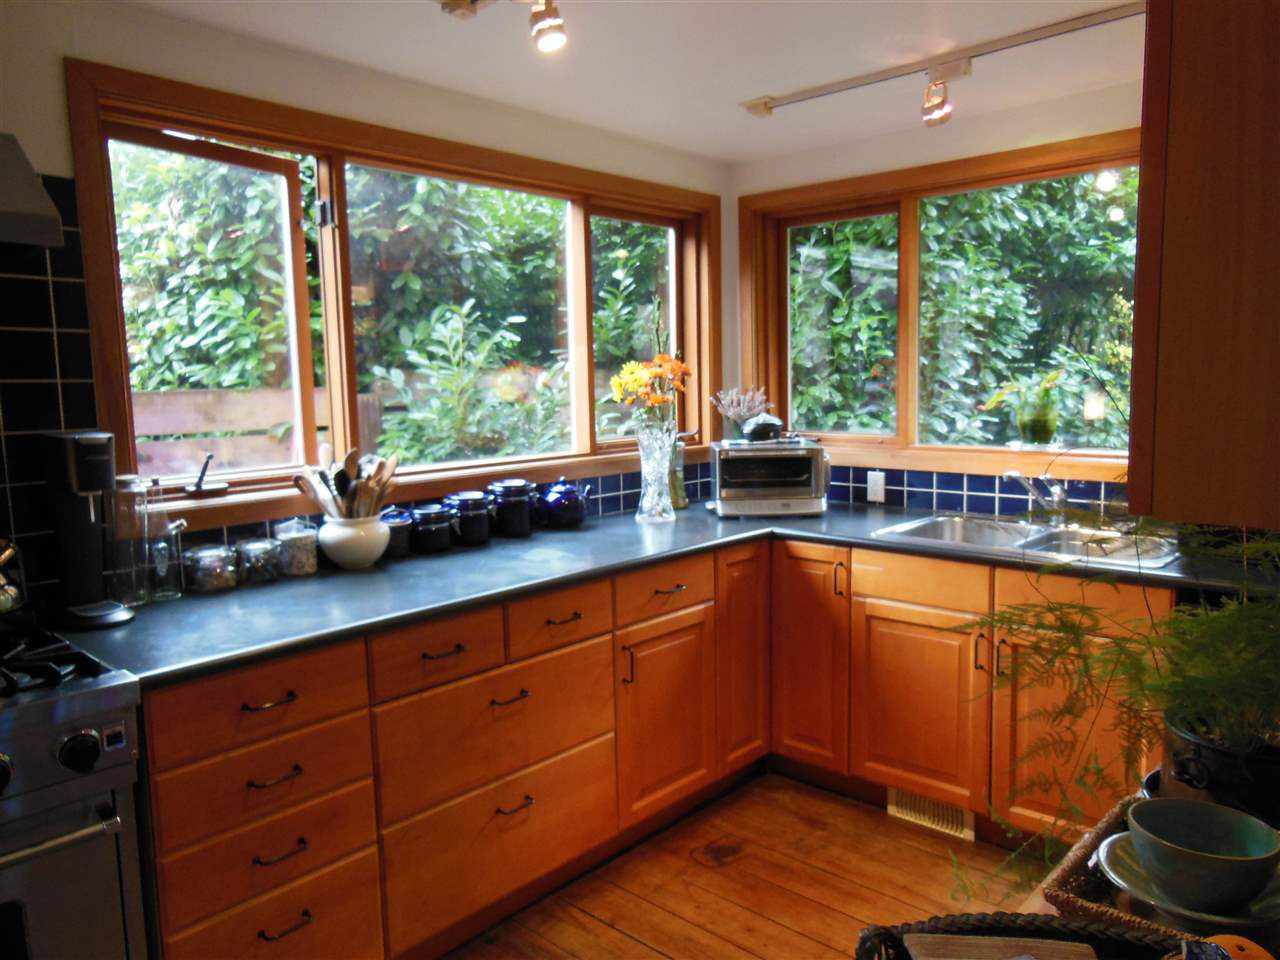 Main Photo: 6431 CHATHAM Street in West Vancouver: Horseshoe Bay WV House for sale : MLS®# R2129932